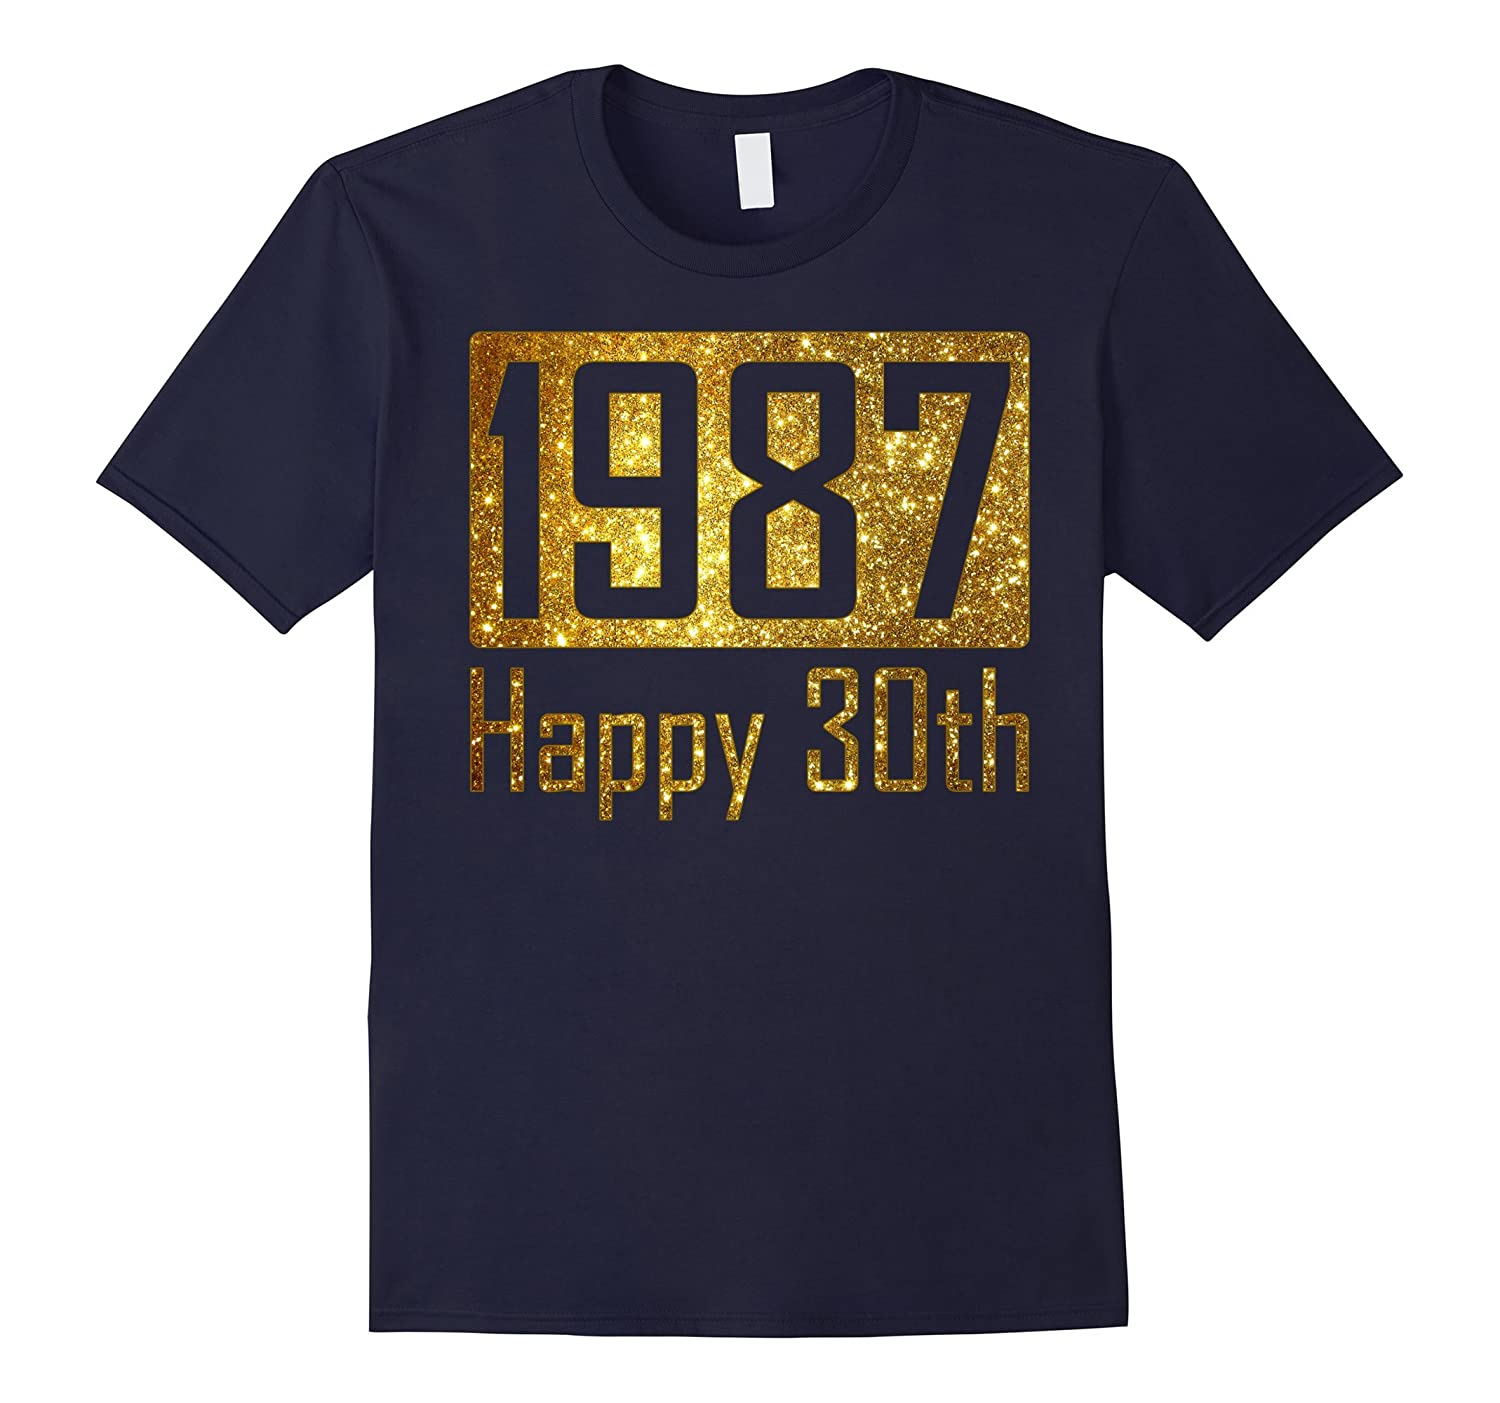 1987 Happy 30th Birthday Gift  Gold glitter style t shirts-TH